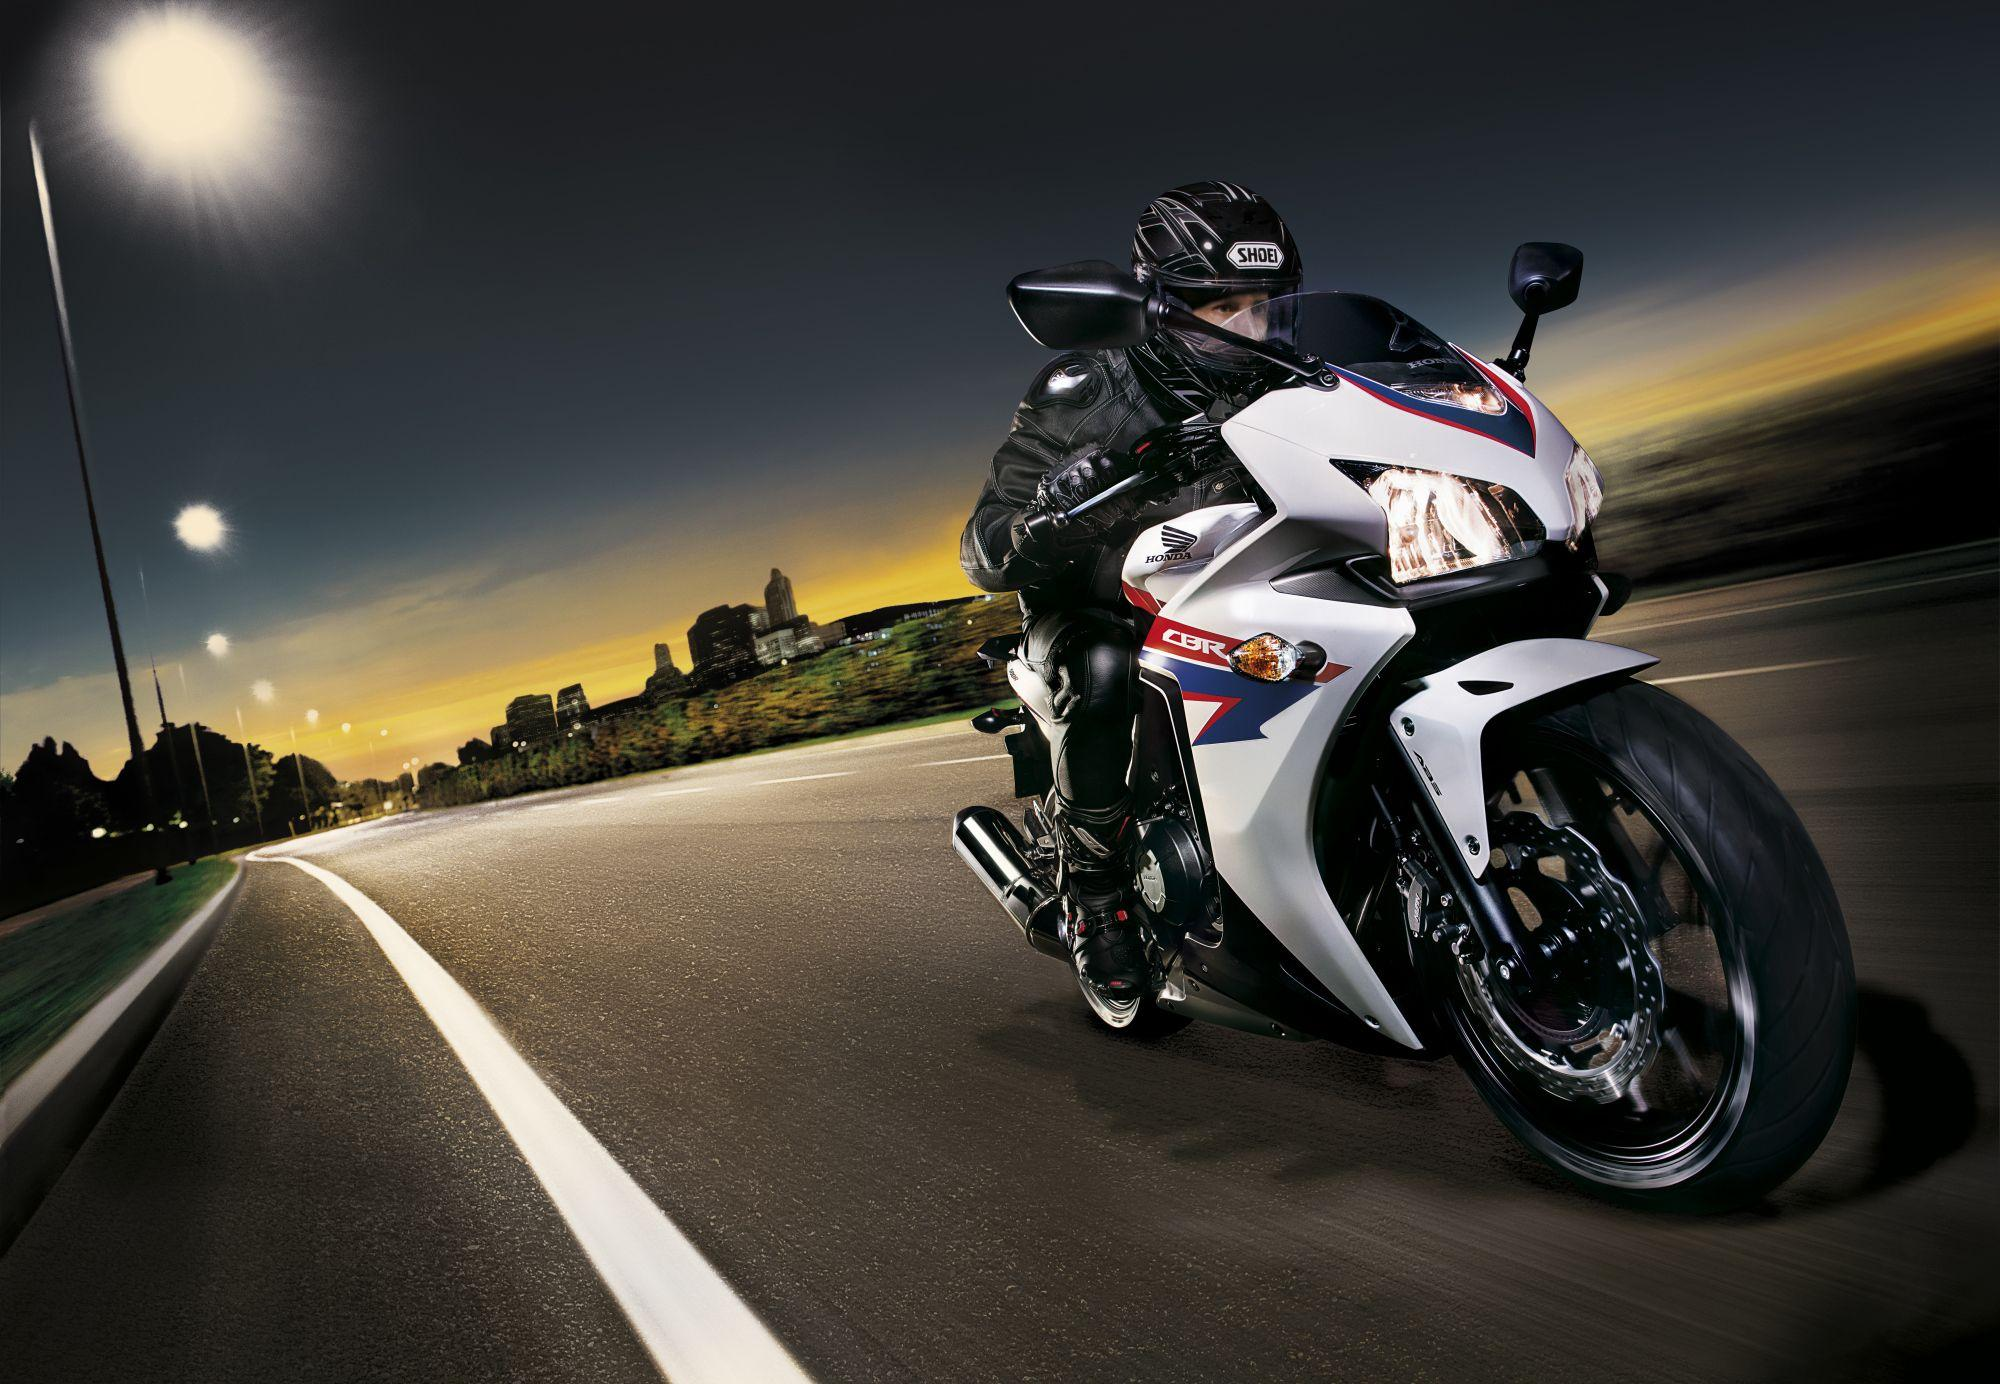 Incredibly fast bike Honda CBR 500 R wallpapers and images ...